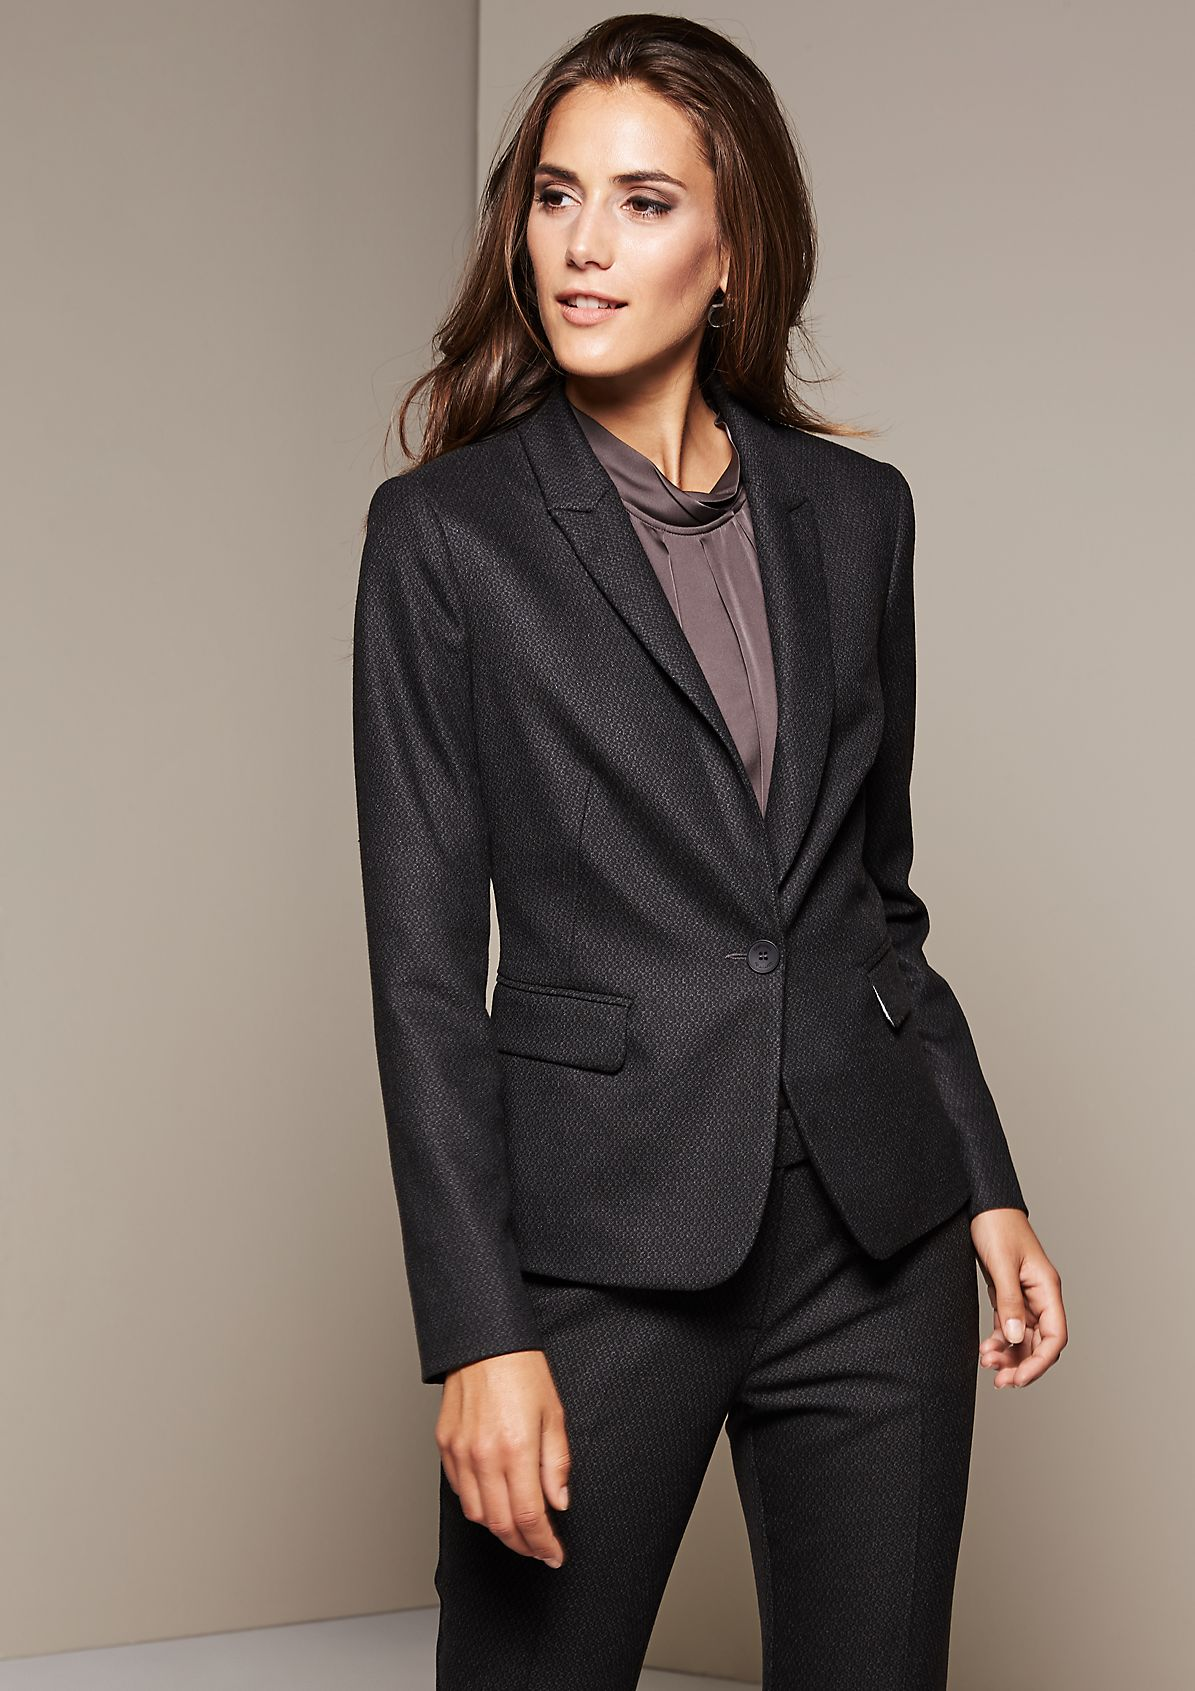 Elegant blazer with a sophisticated minimal pattern from s.Oliver